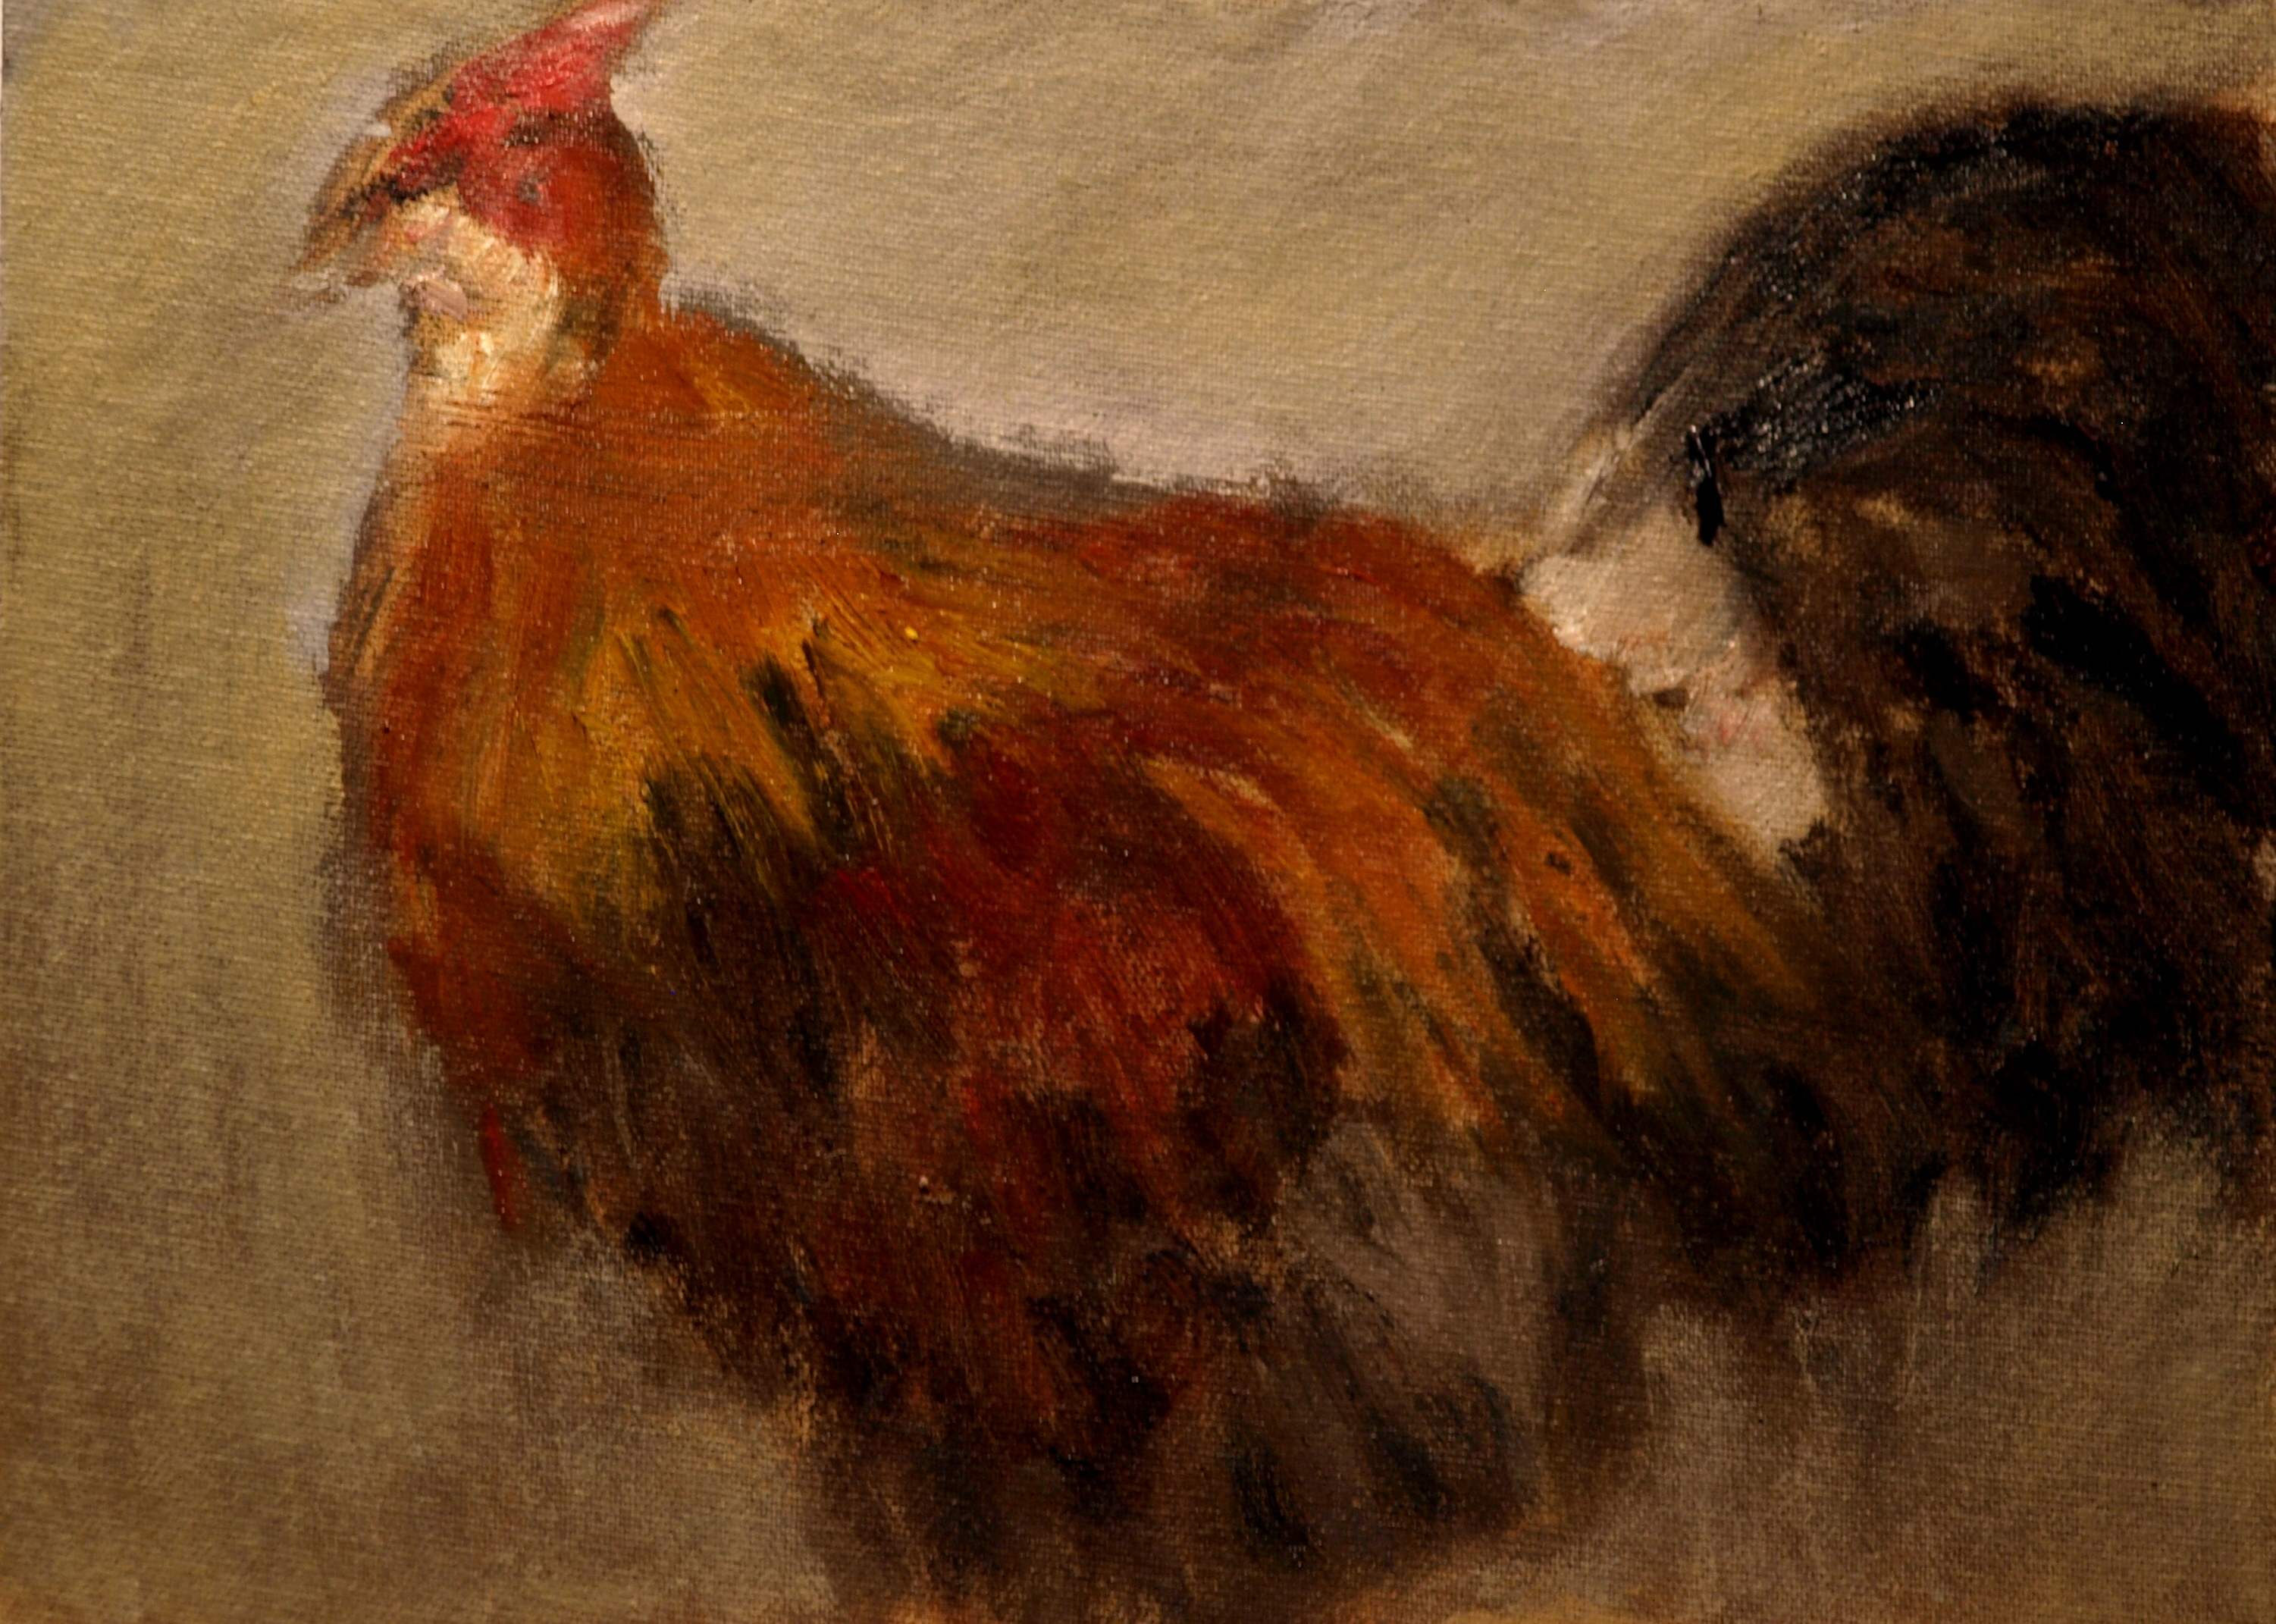 Blue Western Americana, Oil on Canvas on Panel, 9 x 12 Inches, by Richard Stalter, $225